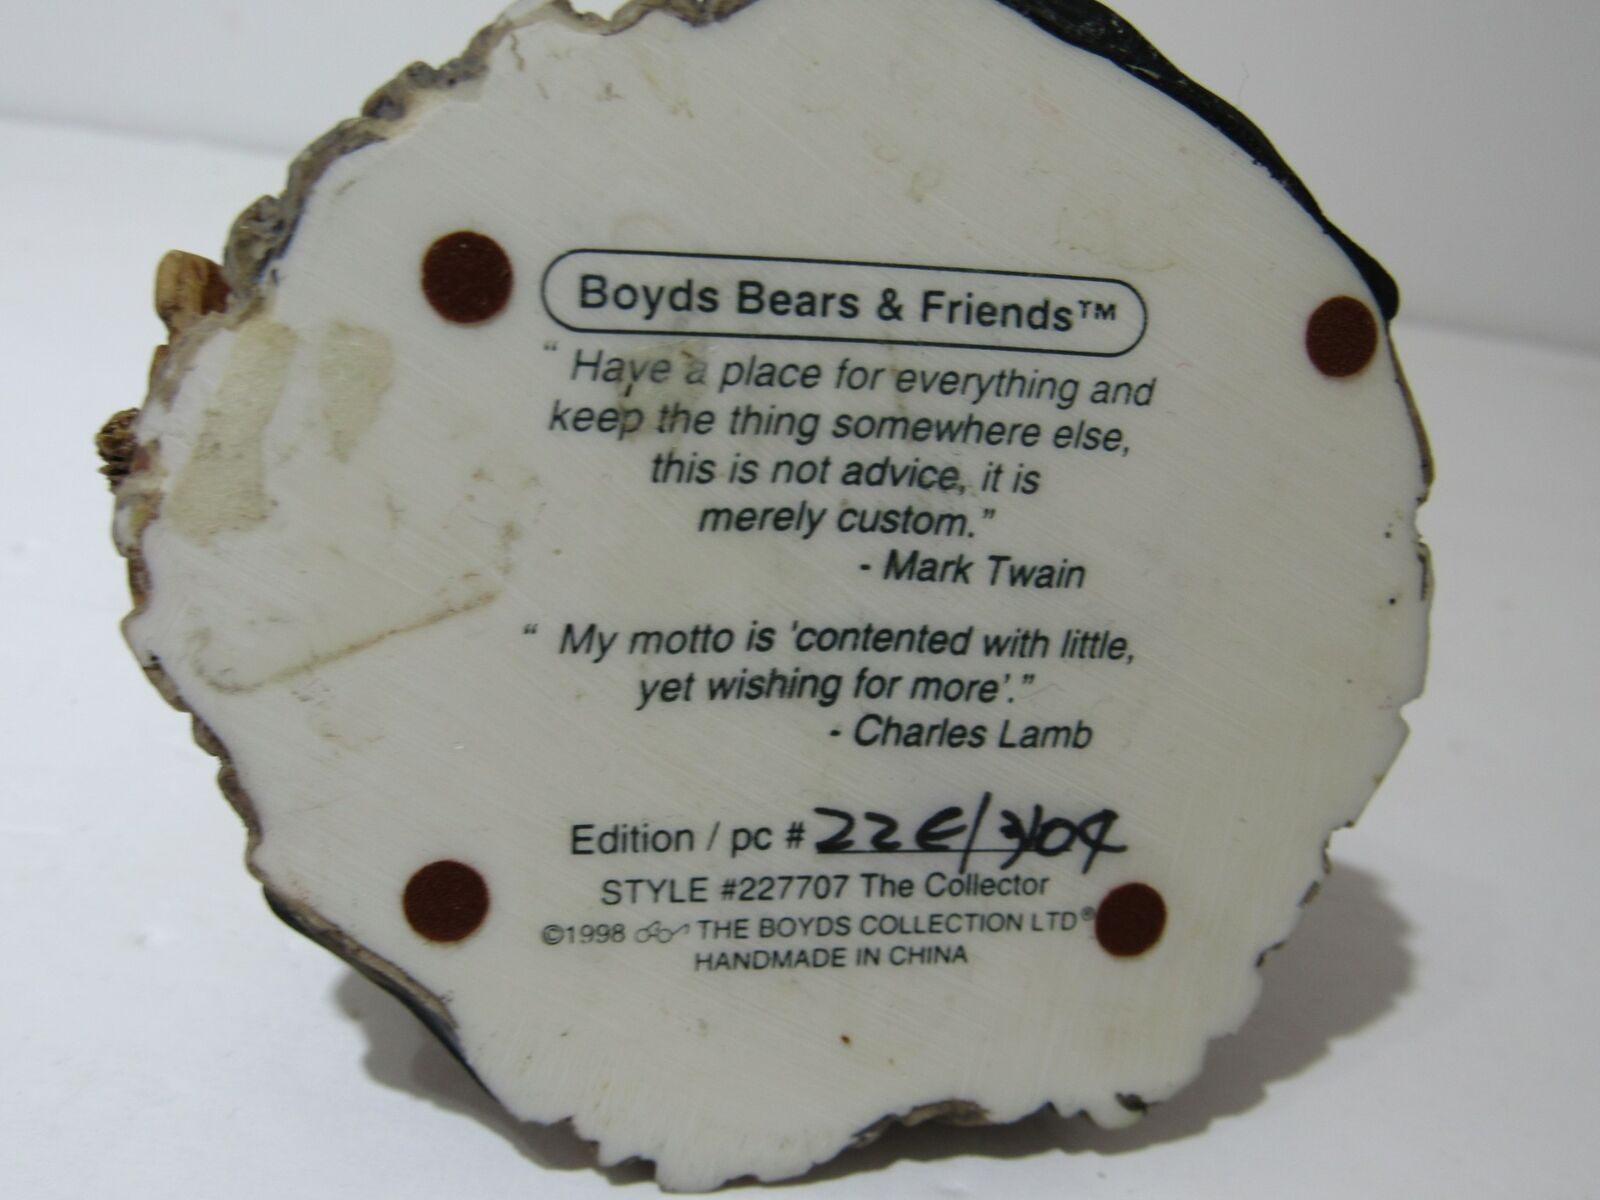 Boyds Bears & Friends The Collector #227707 image 4